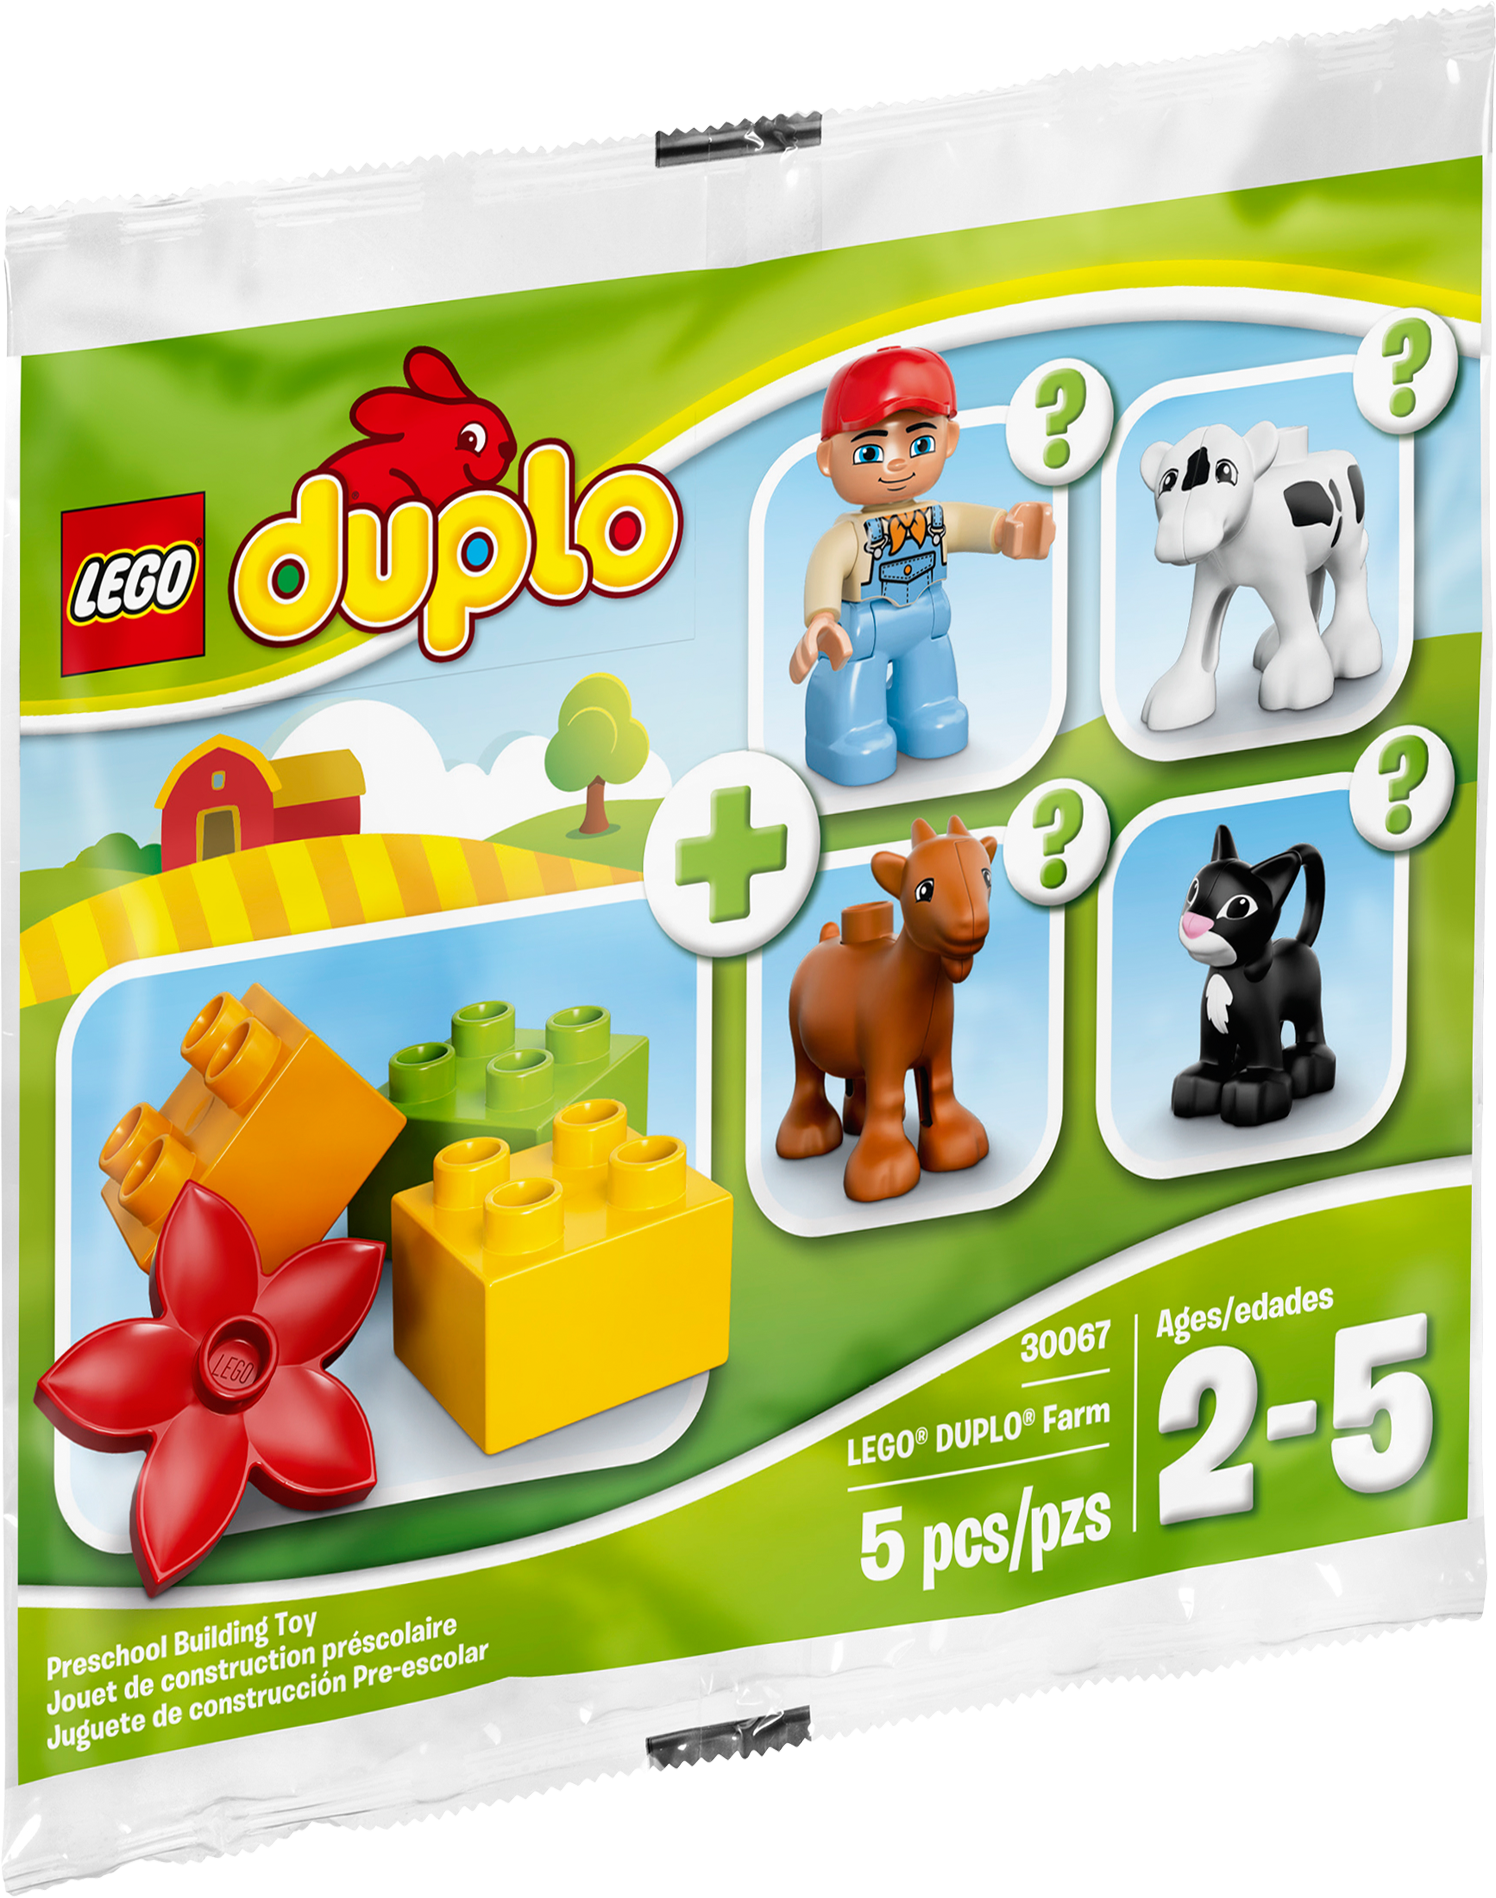 LEGO DUPLO Farm Cat